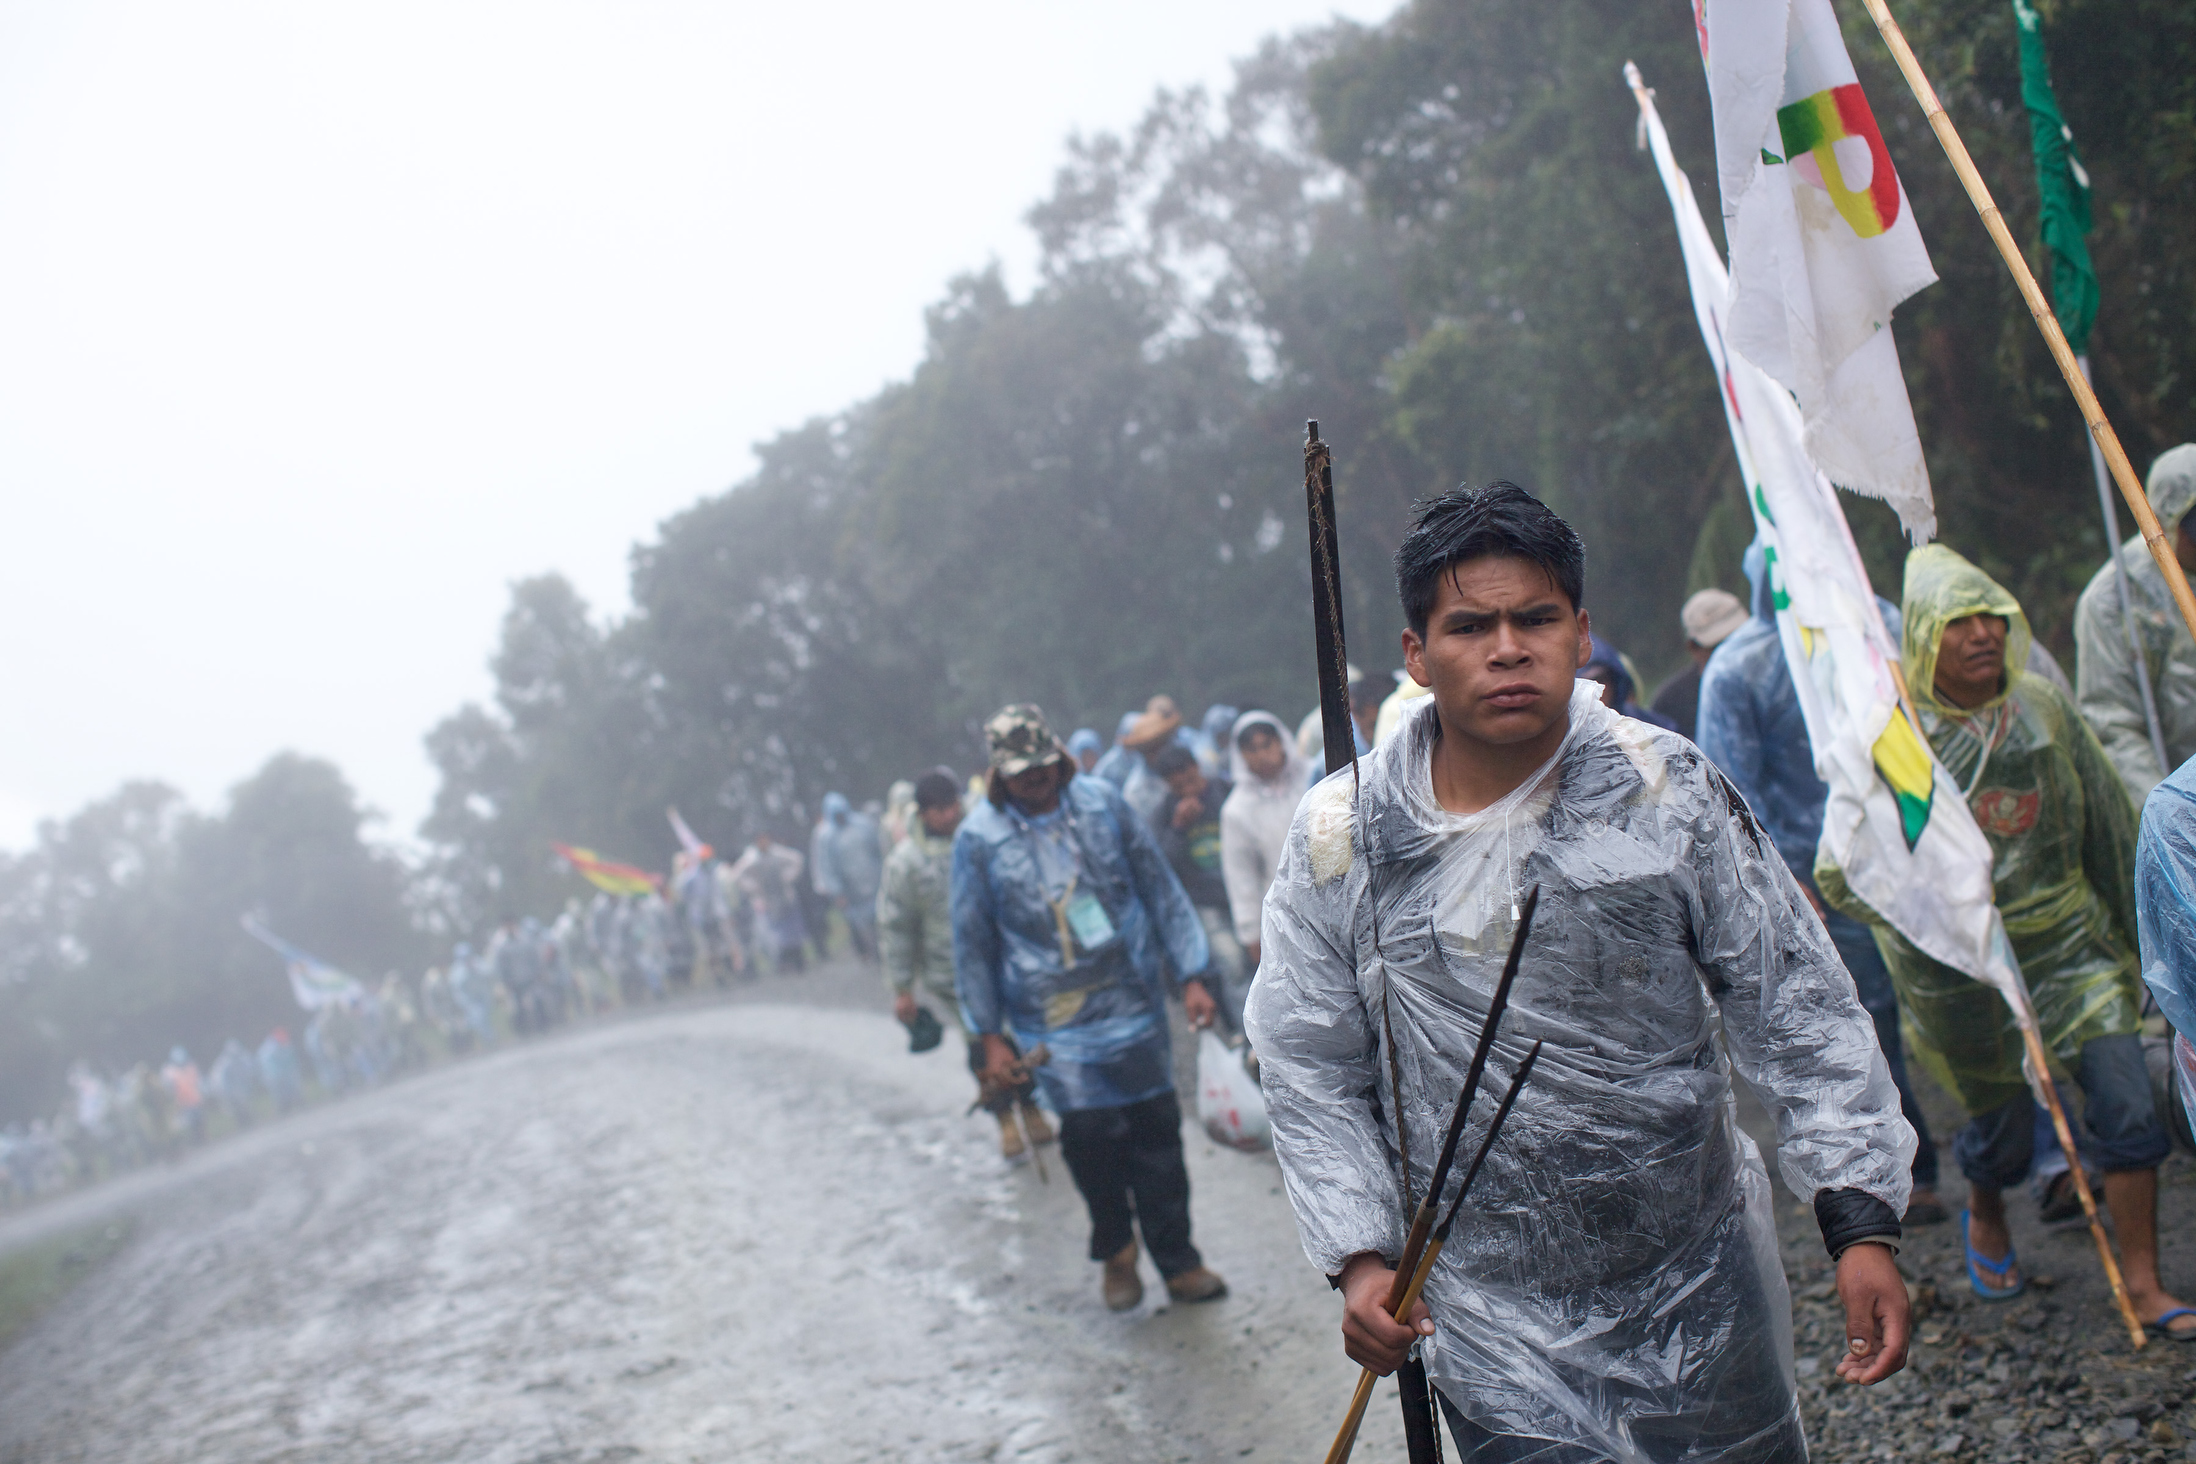 Indigenous groups endured rough weather and camped in the Yungas valley during their protest march earlier this spring from their jungle communities to the capital of Bolivia, La Paz. But the struggle initially appea... | Credit: NOAH FRIEDMAN-RUDOVSKY